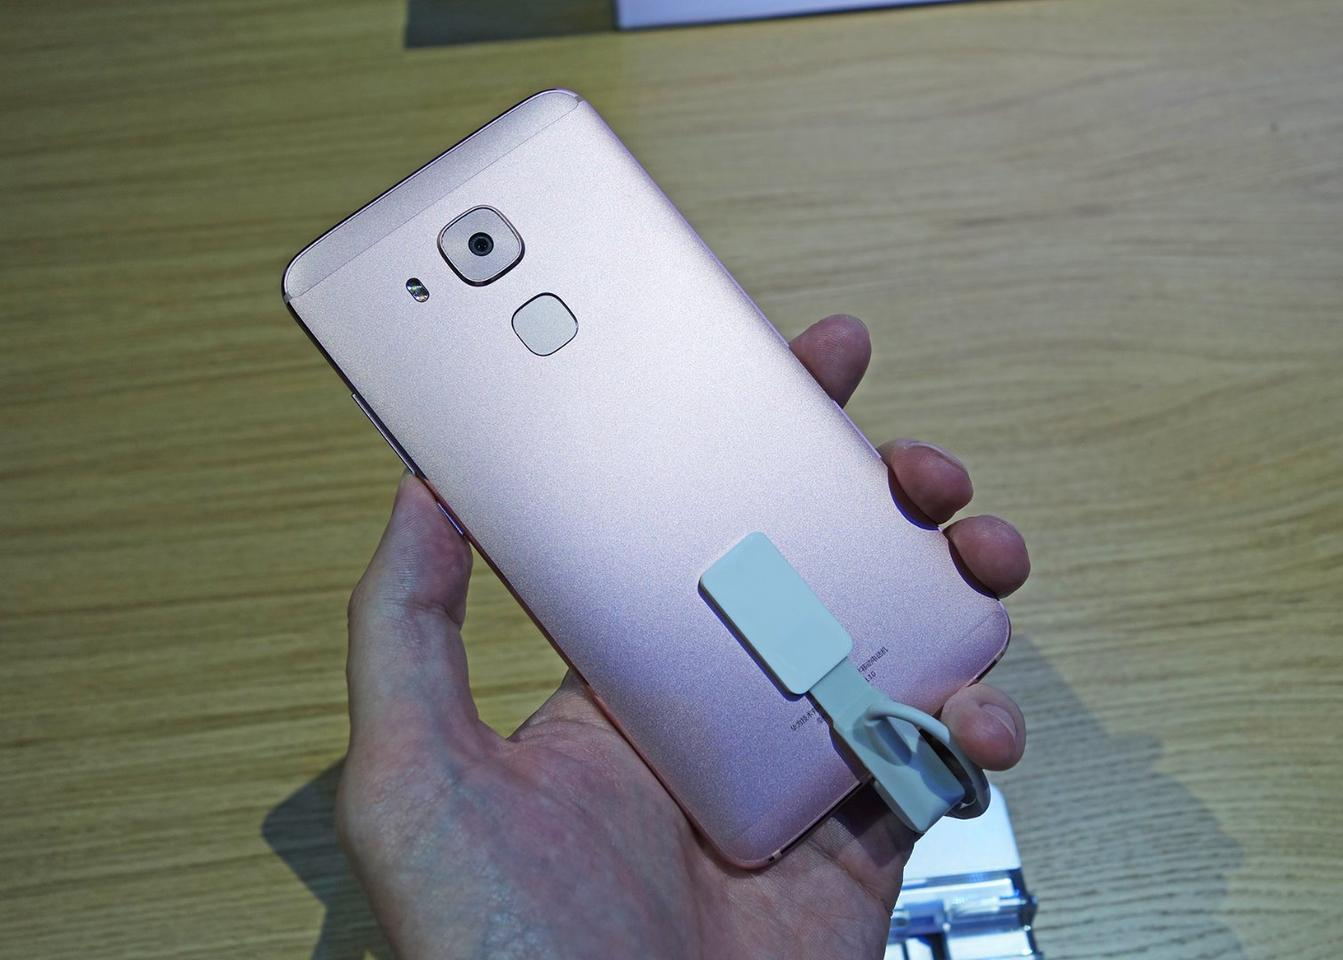 The 16 MP camera is centered on the back of the Nova Plus, apparently to keep the device thin